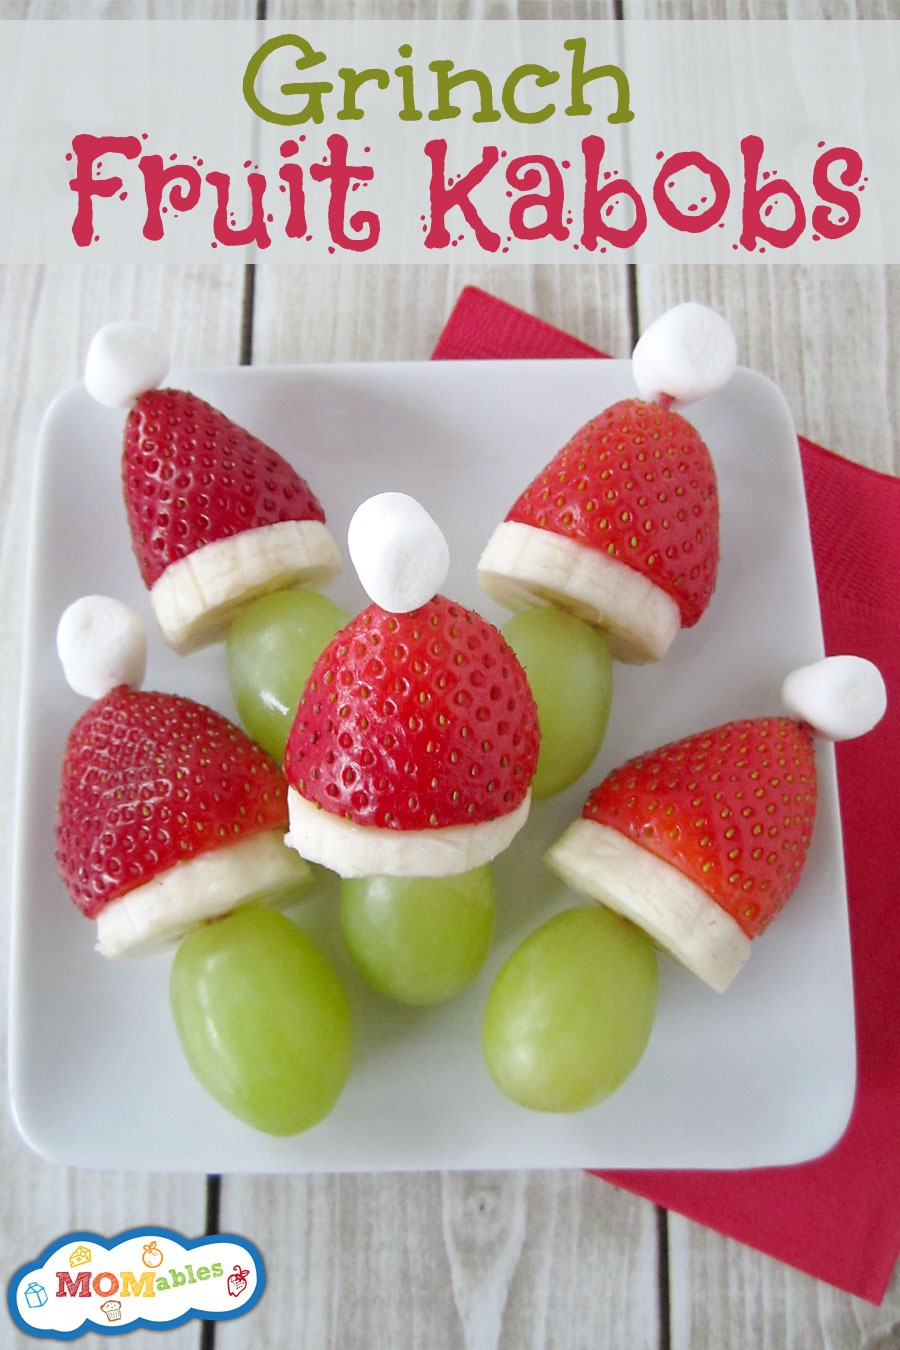 7 Fun Amp Healthy Food Ideas For The School Party